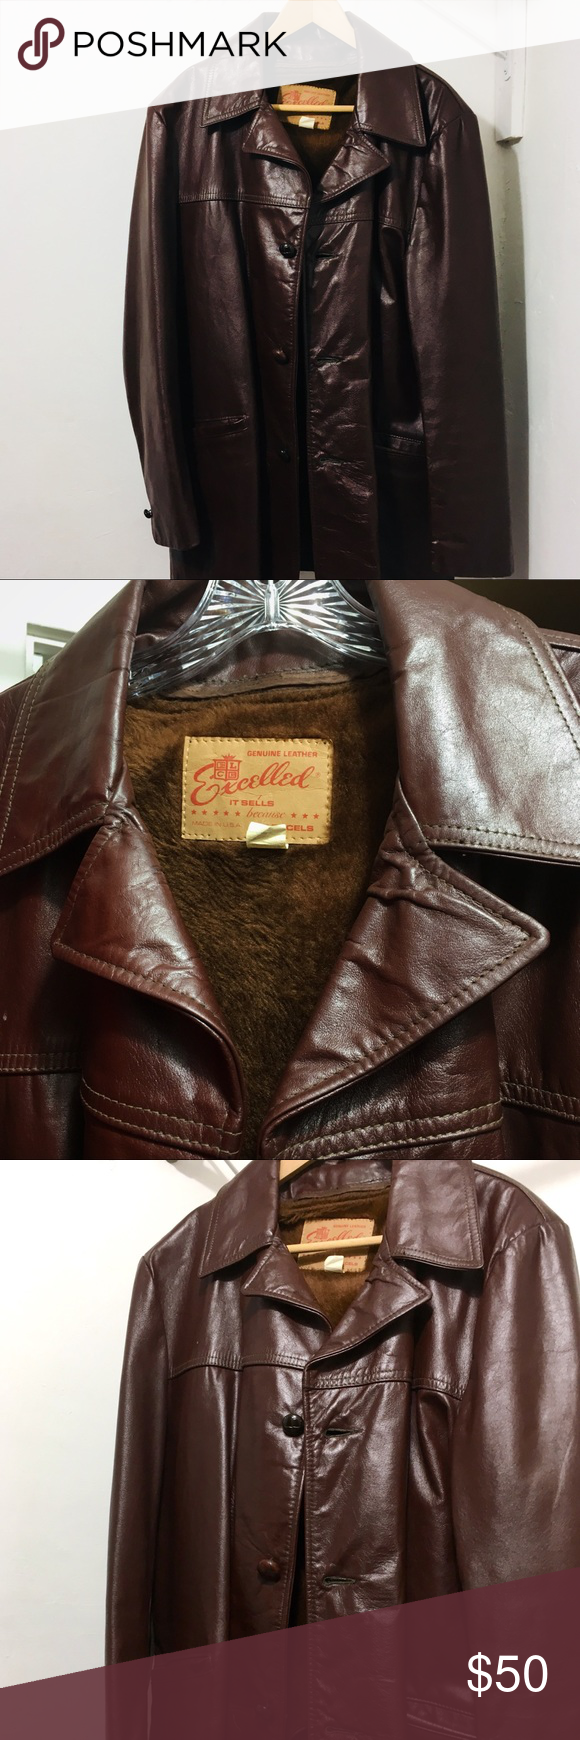 Vintage Men S Excelled Leather Jacket Vintage Excelled Genuine Leather Jacket Has A Removeable Leather Jacket Vintage Leather Jacket Genuine Leather Jackets [ 1740 x 580 Pixel ]